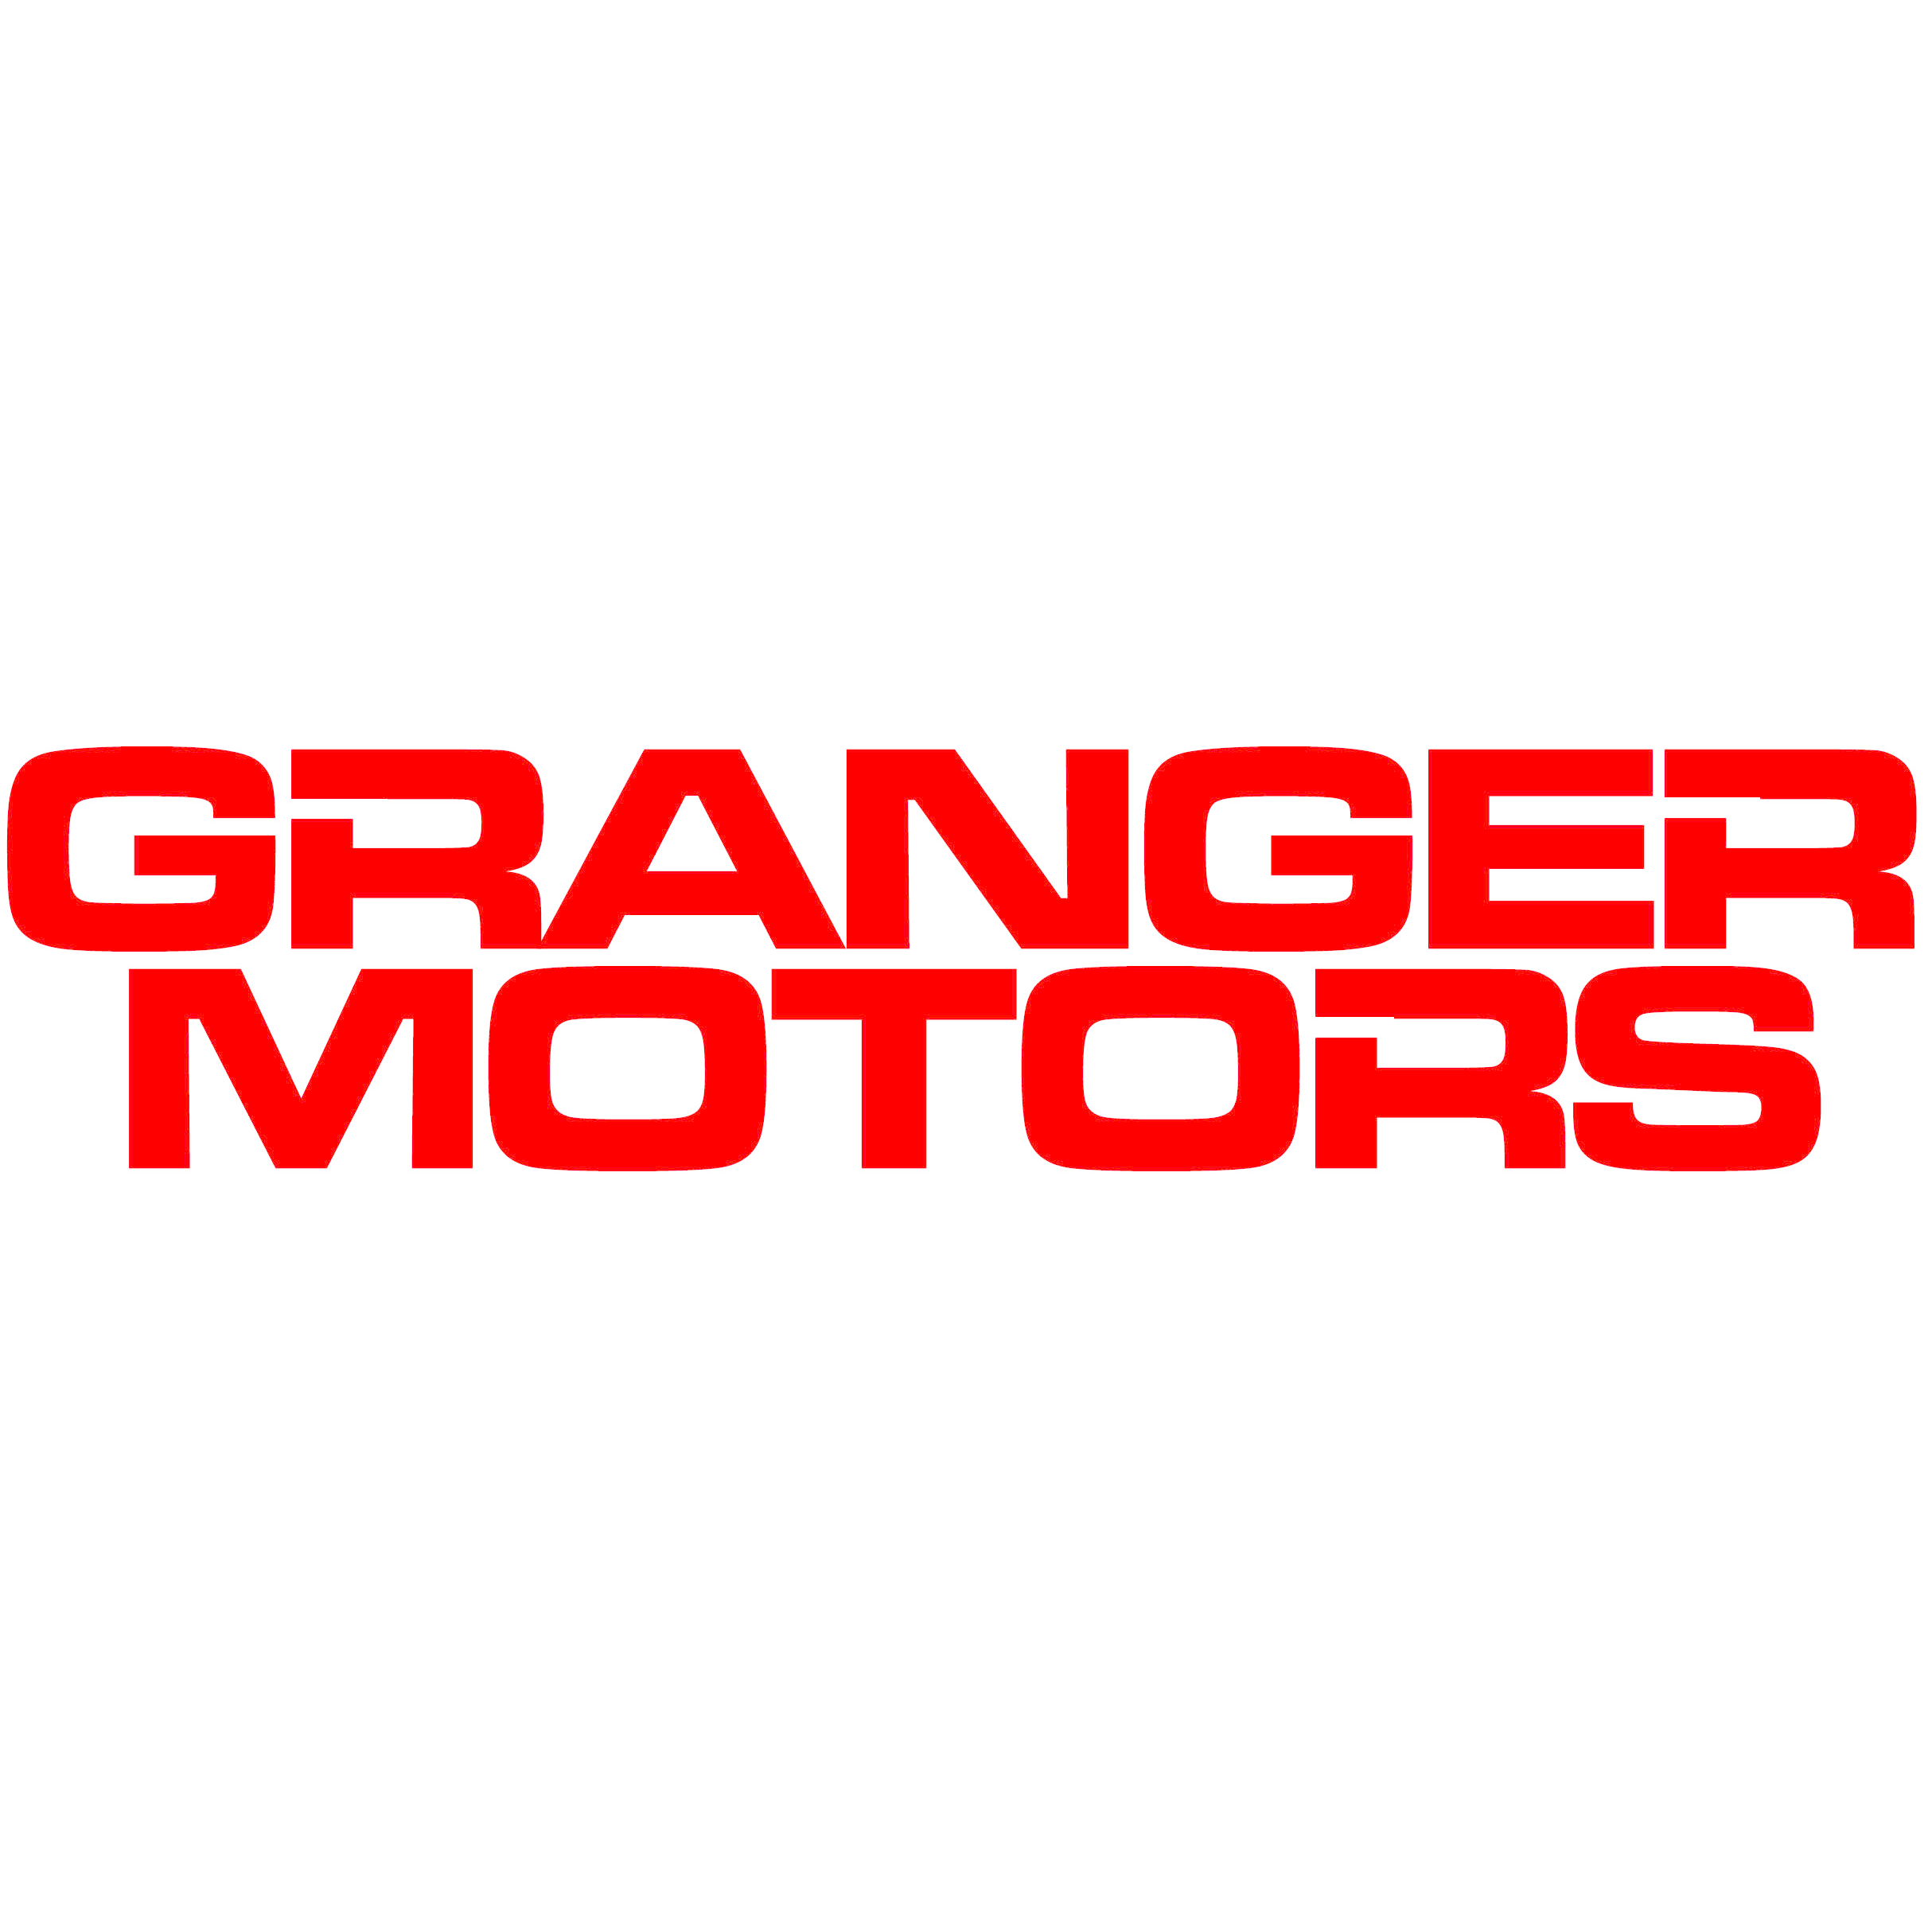 Granger motors granger ia company profile for Granger motors used cars